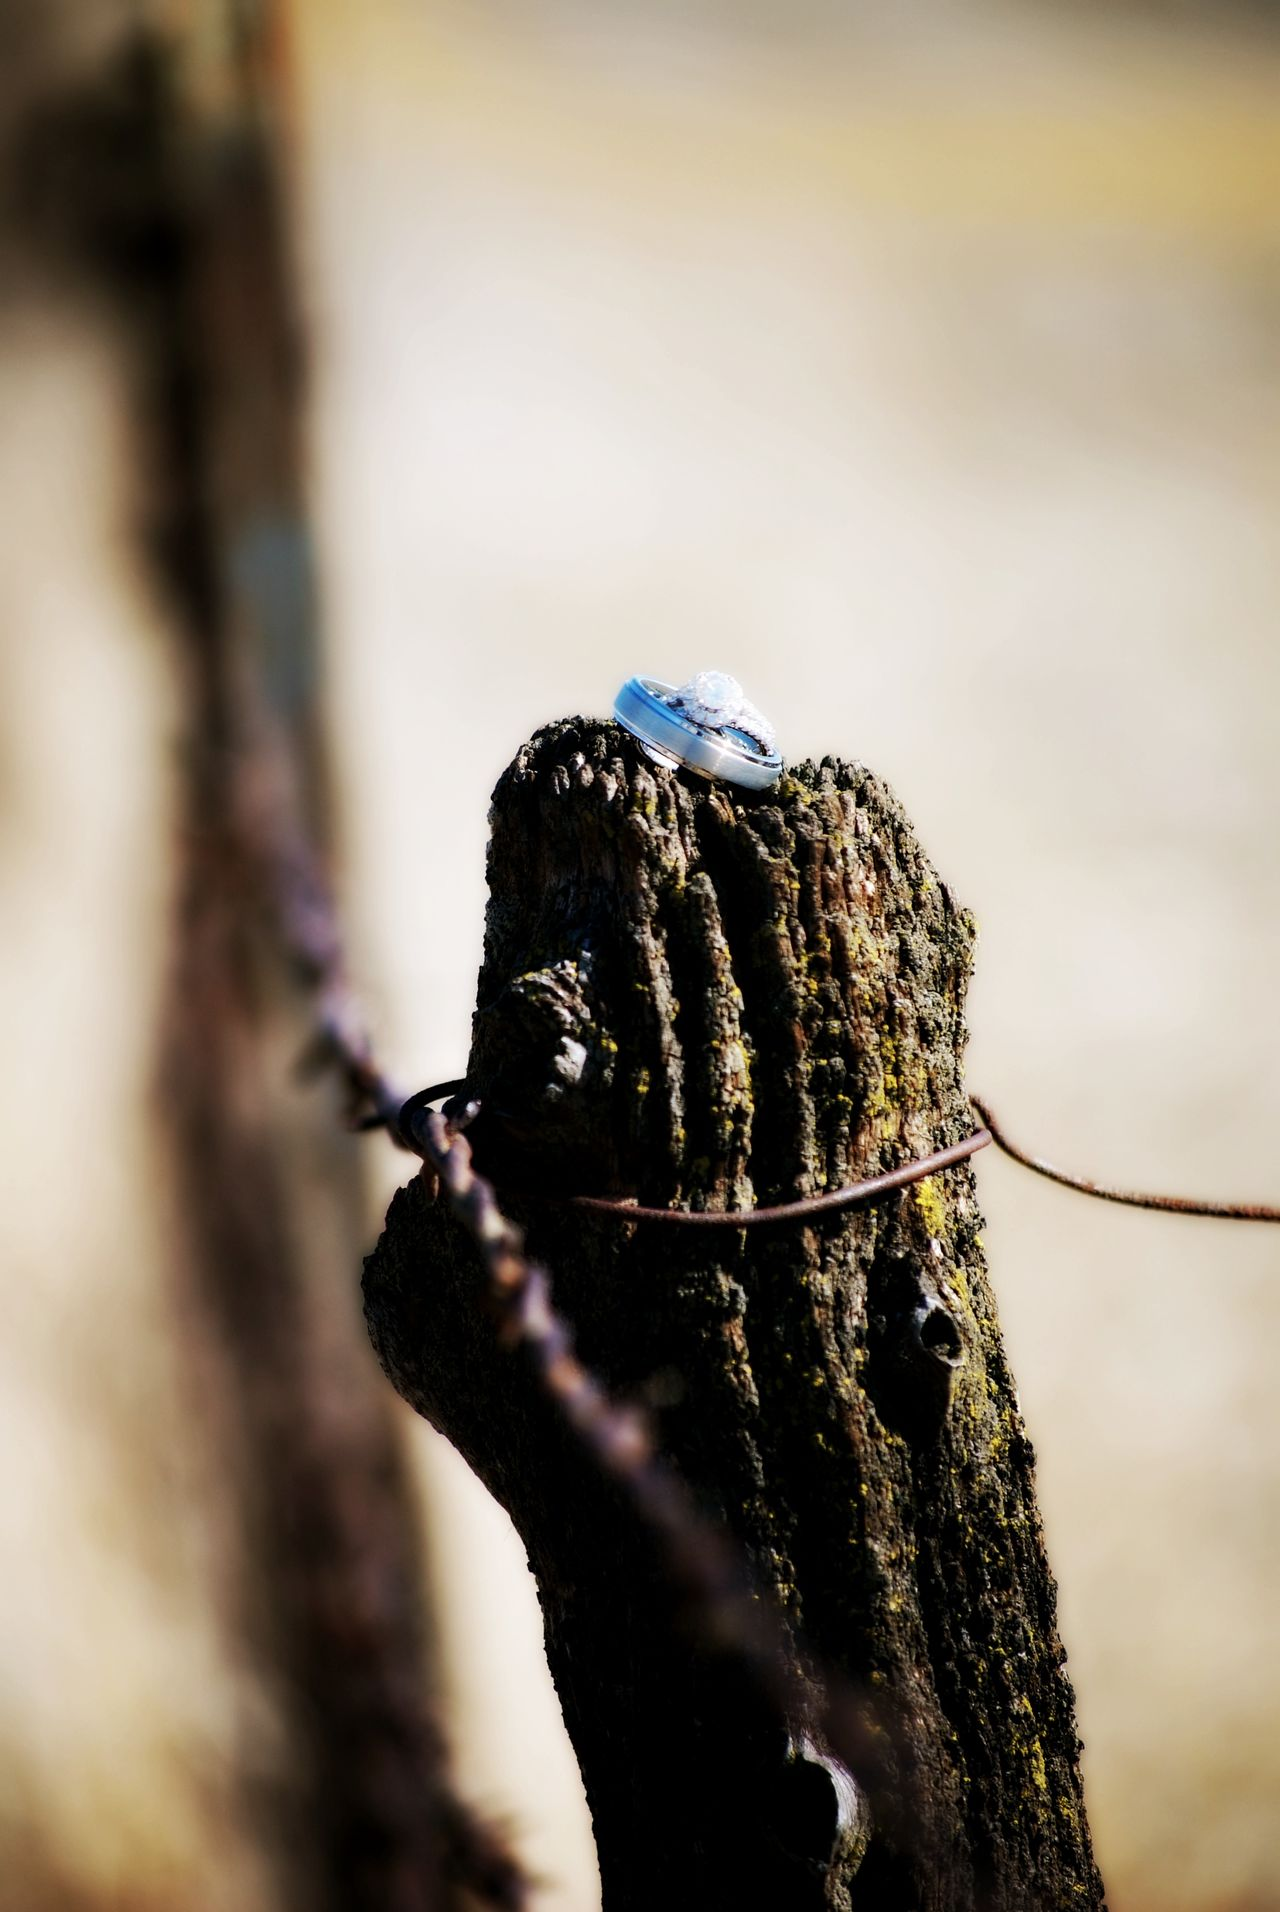 Barbed Wire Close-up Day Diamond Rings No People Old Fence Post Outdoors Selective Focus Sunny